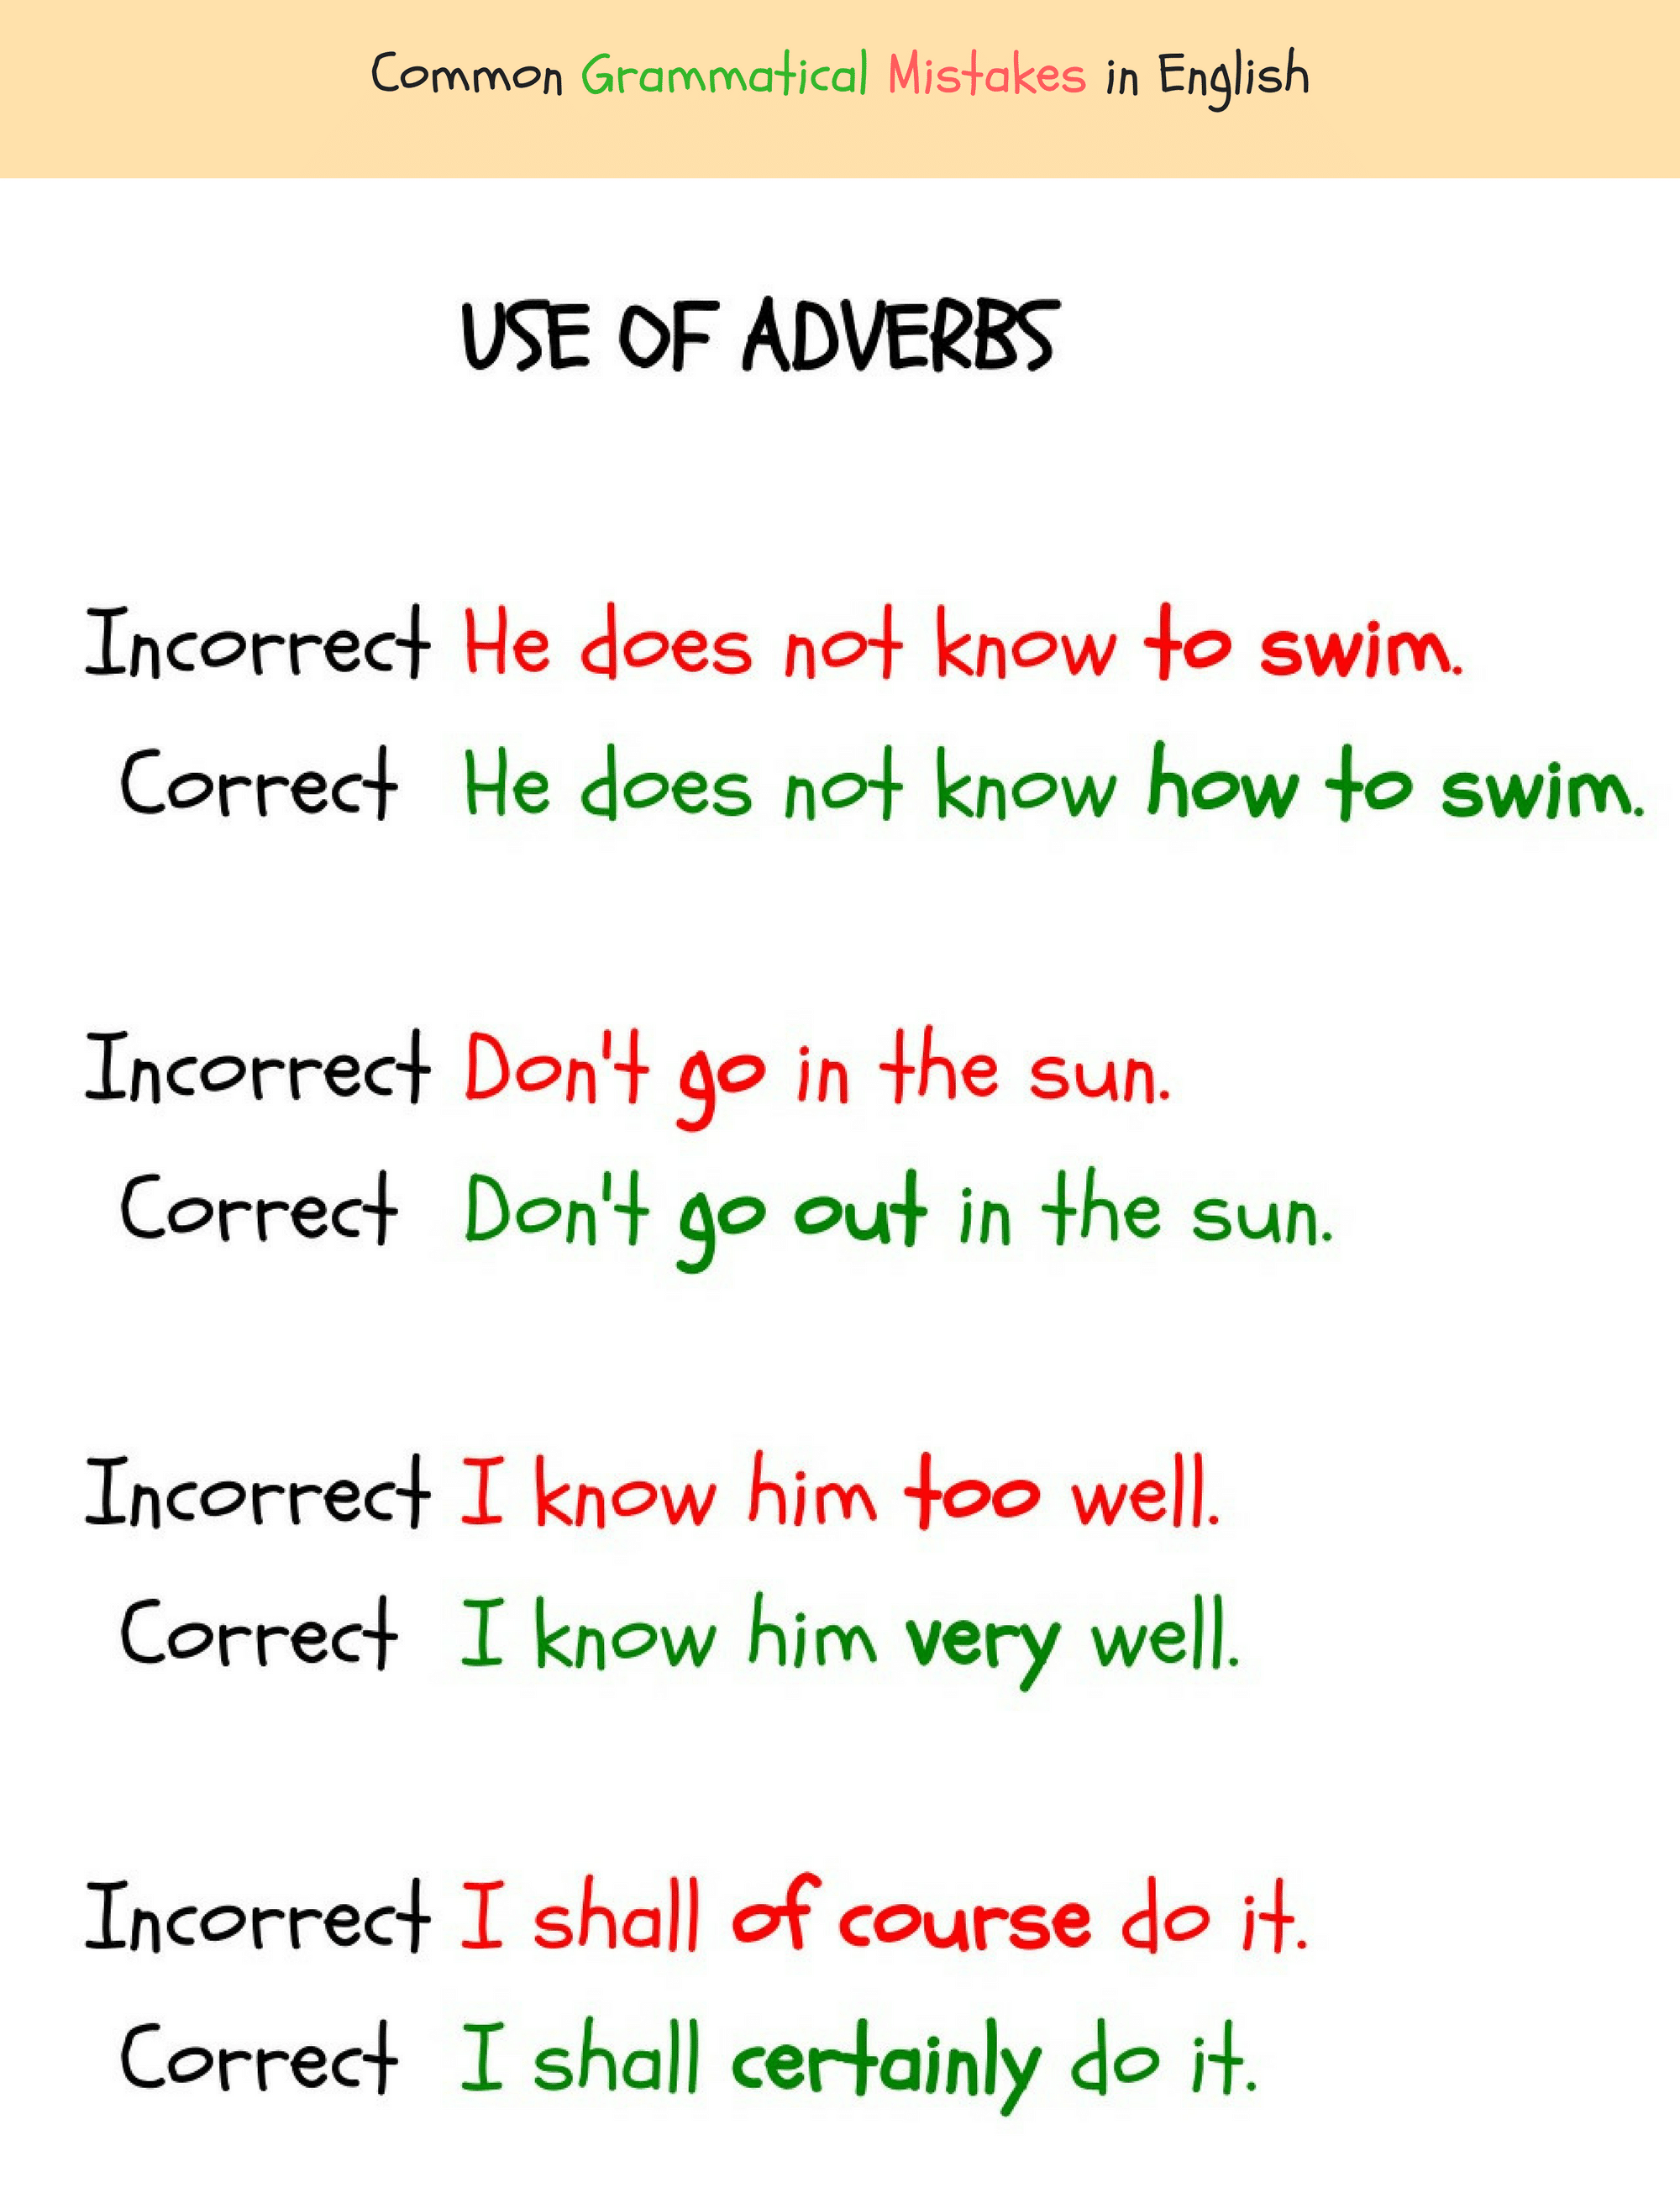 It does not spell with adverbs Rules for continuous and separate writing 98